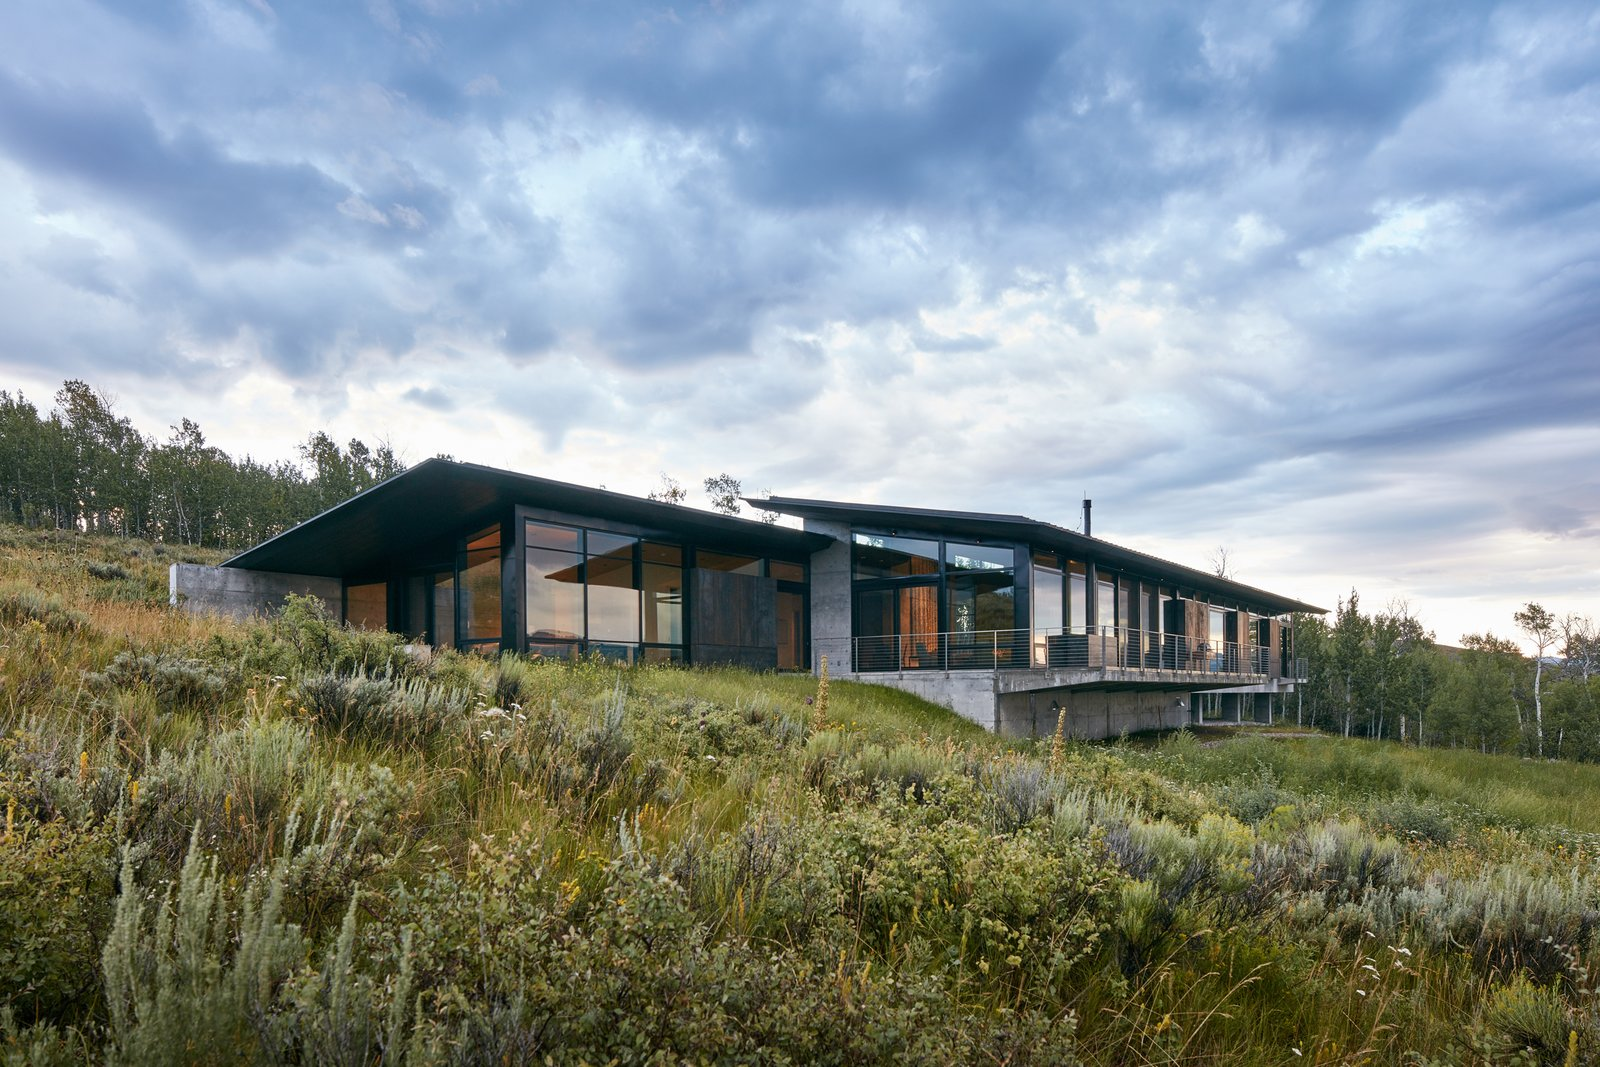 From the entrance, the cantilevered structure wraps around to reveal a comparatively more modest side that bows to the mountains and floats on the meadow. Tagged: Exterior, House, Metal Roof Material, and Concrete Siding Material.  Wyoming Residence by Abramson Teiger Architects